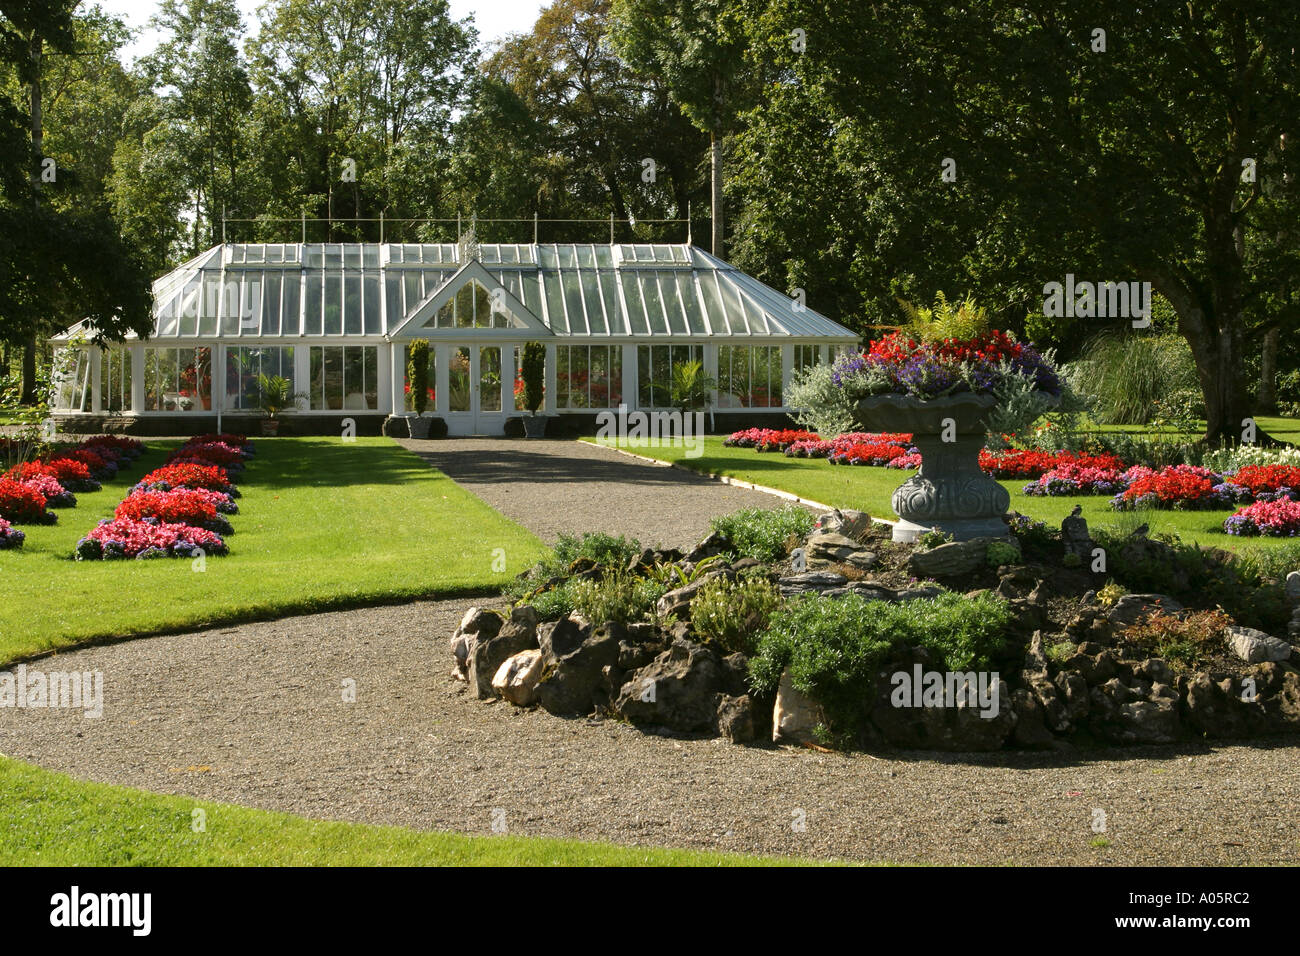 Ireland County Mayo Turlough Turlough House Country Life Museum Glass House  And Formal Garden